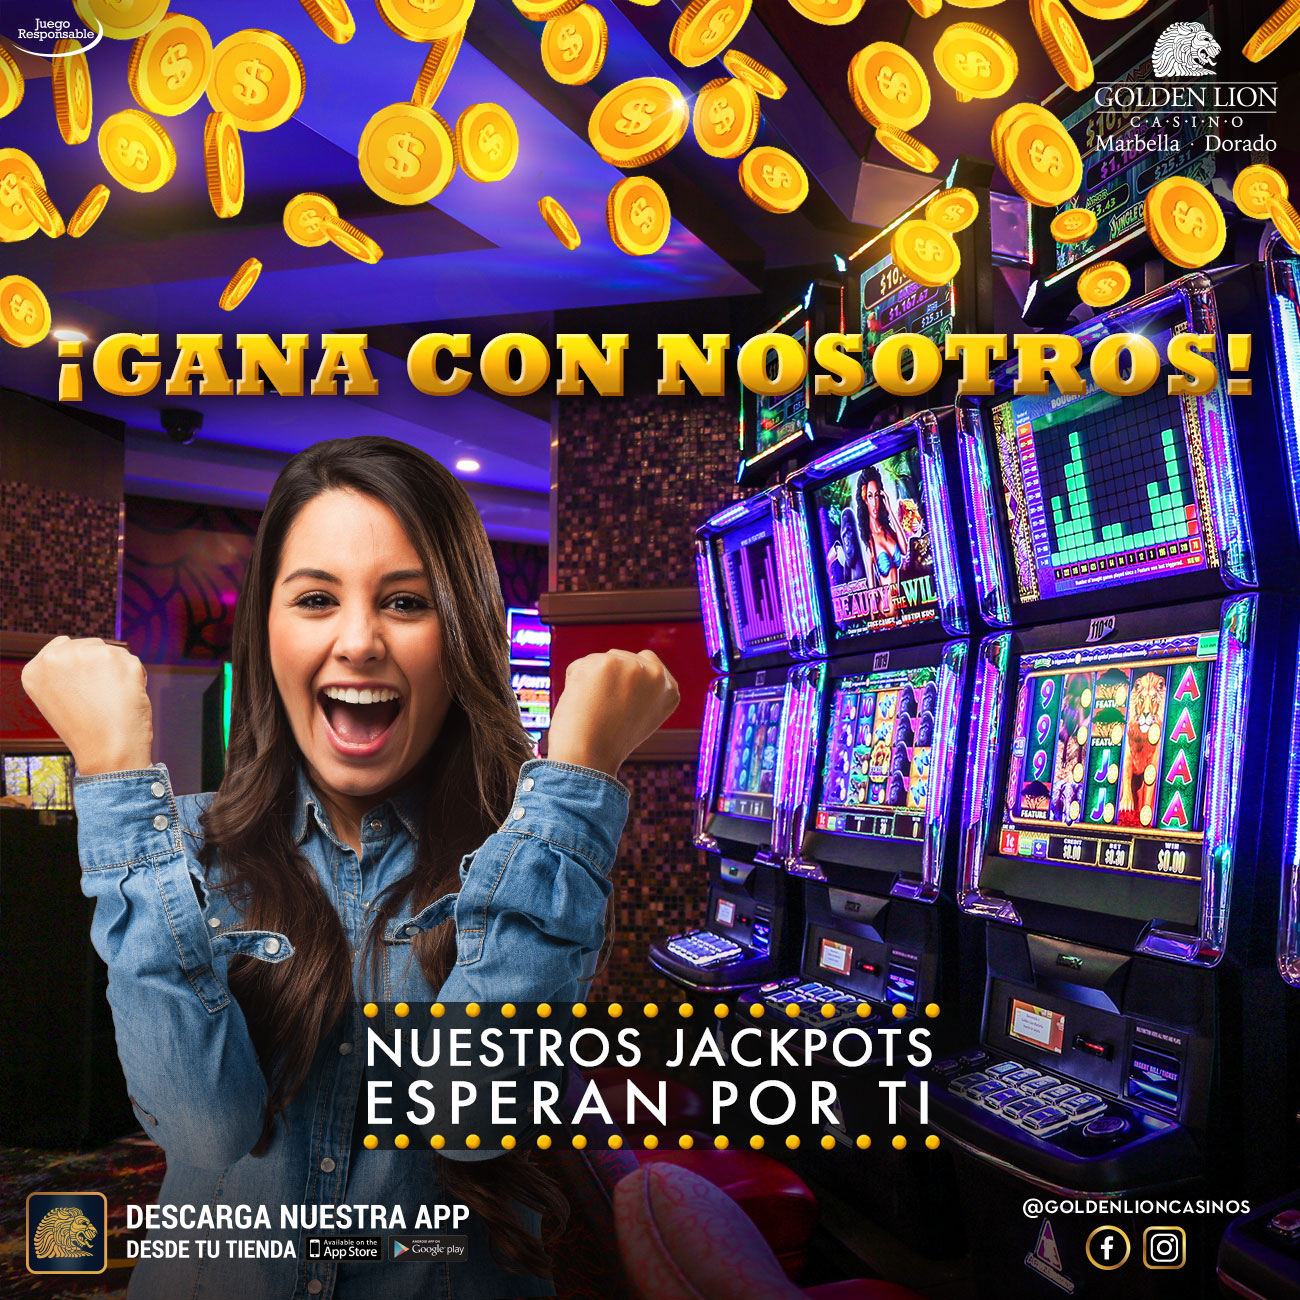 golden lion casino panama el dorado